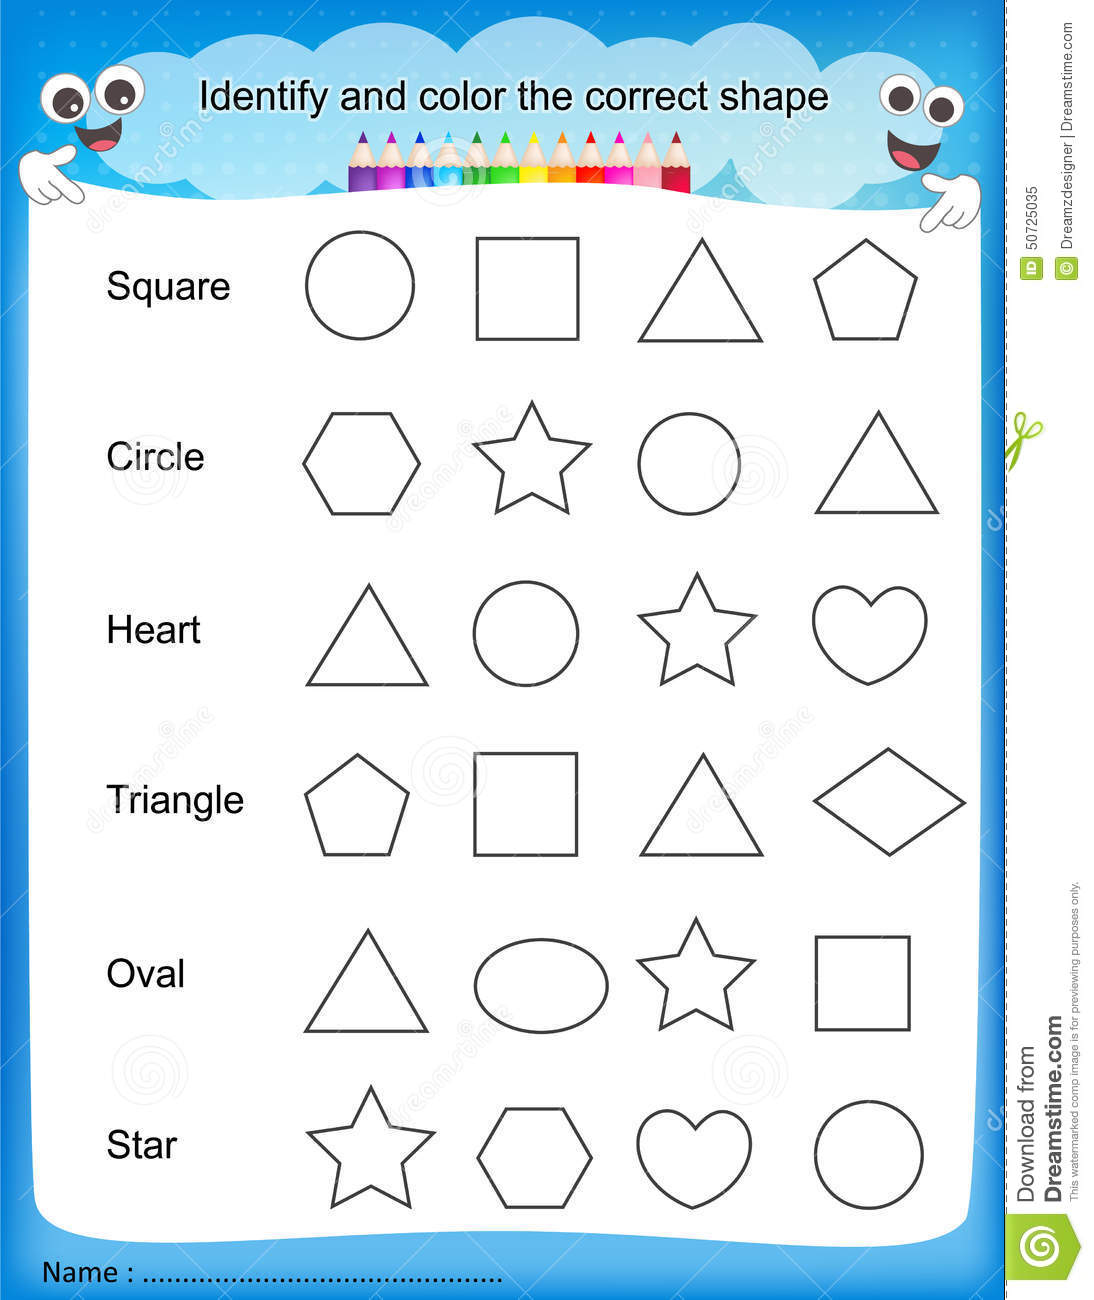 Identify And Color The Correct Shape Worksheet Vector – Shape Worksheet for Kindergarten